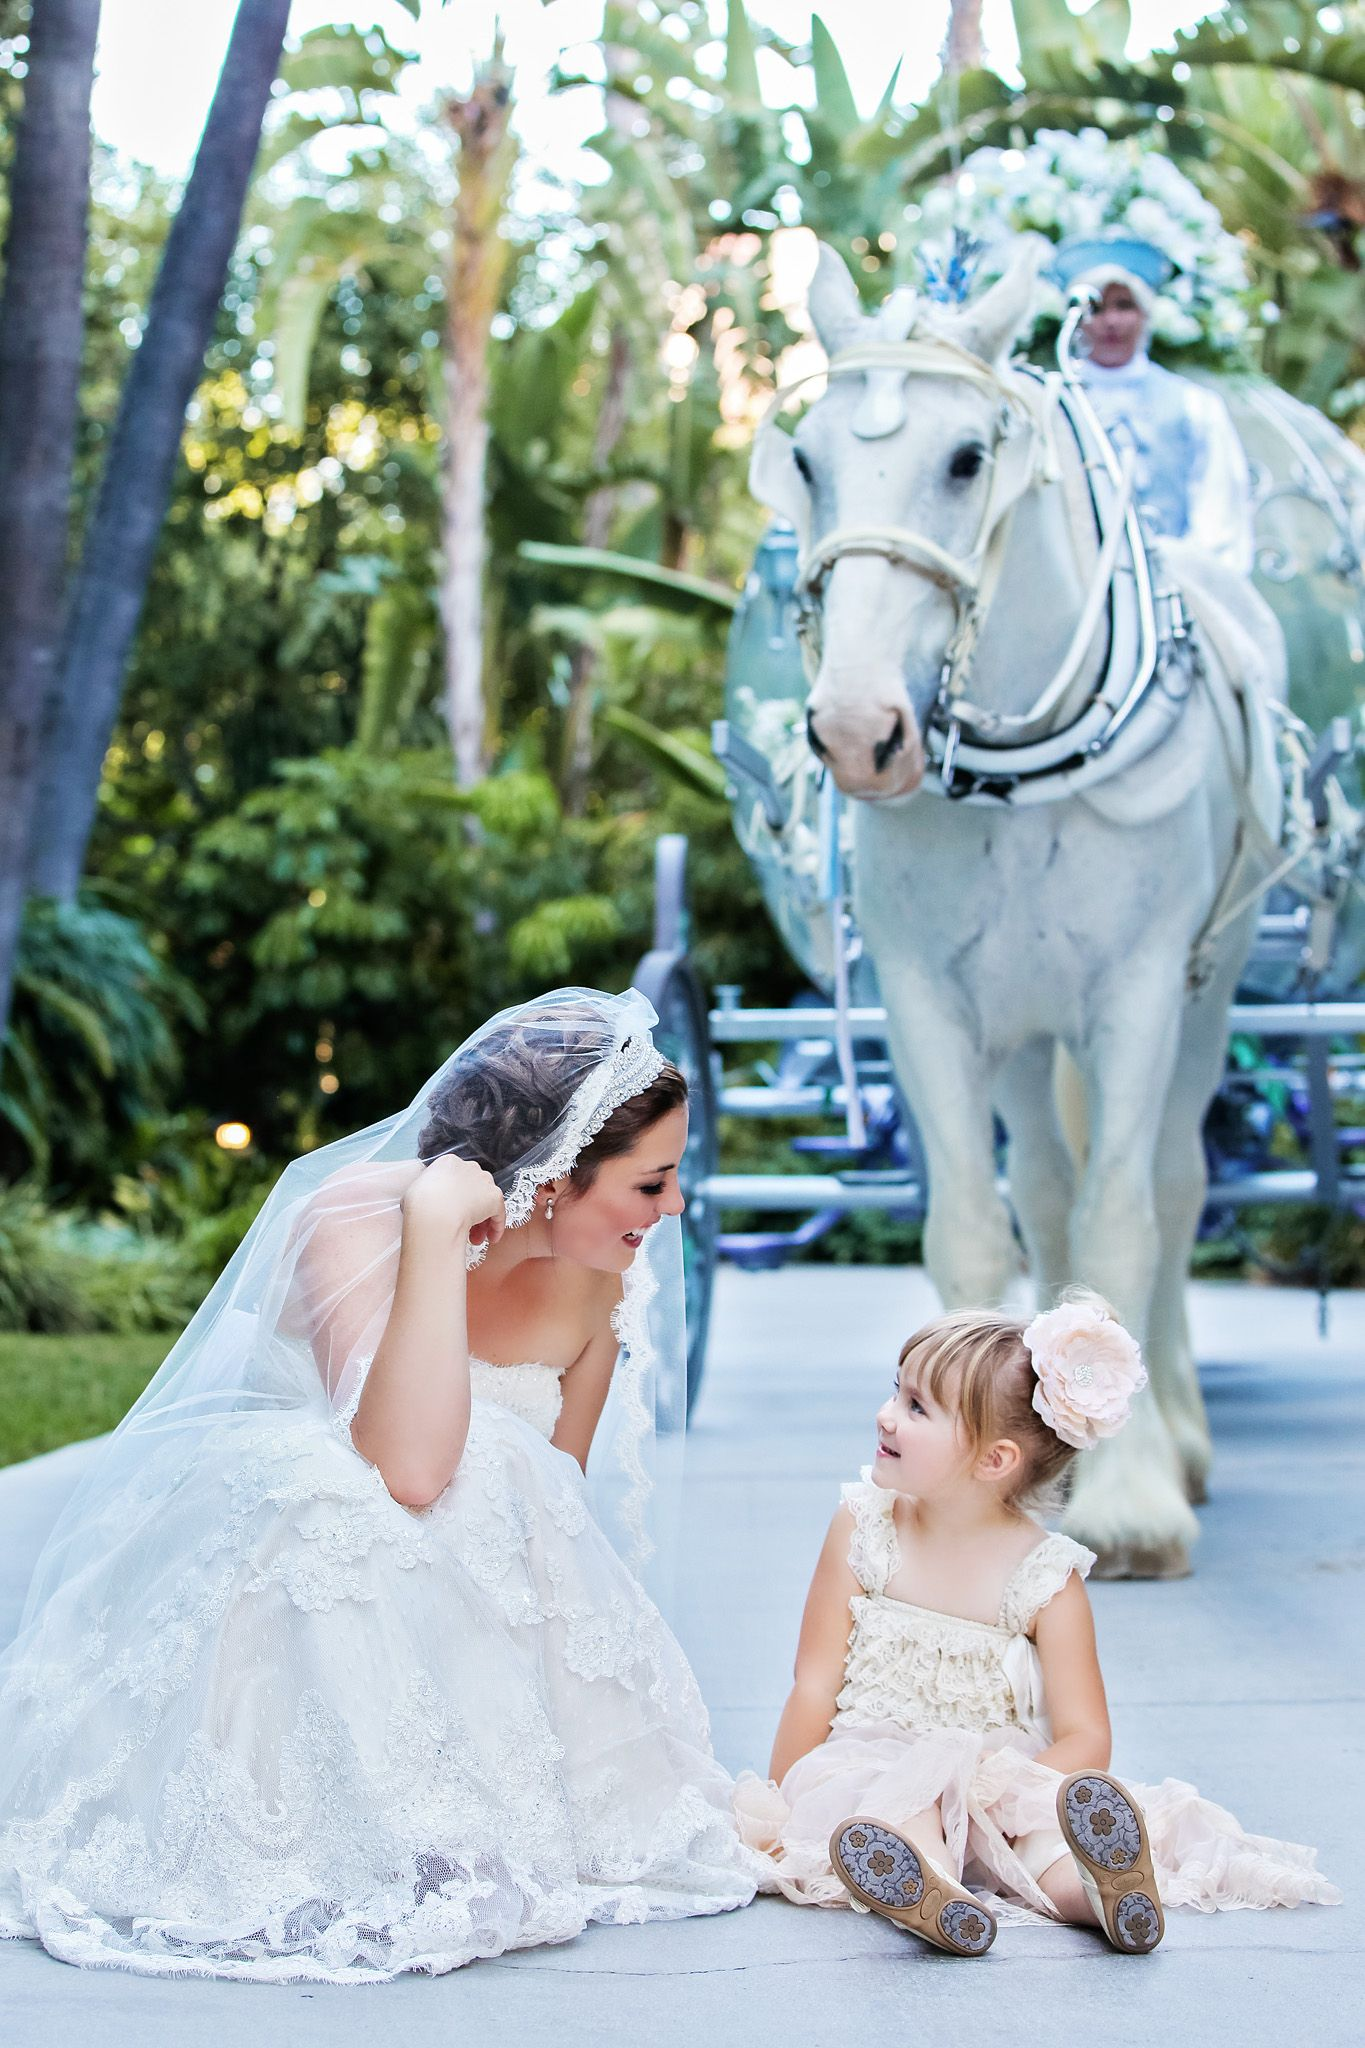 Fairy tale wedding complete with a white horse. #disneyweddings